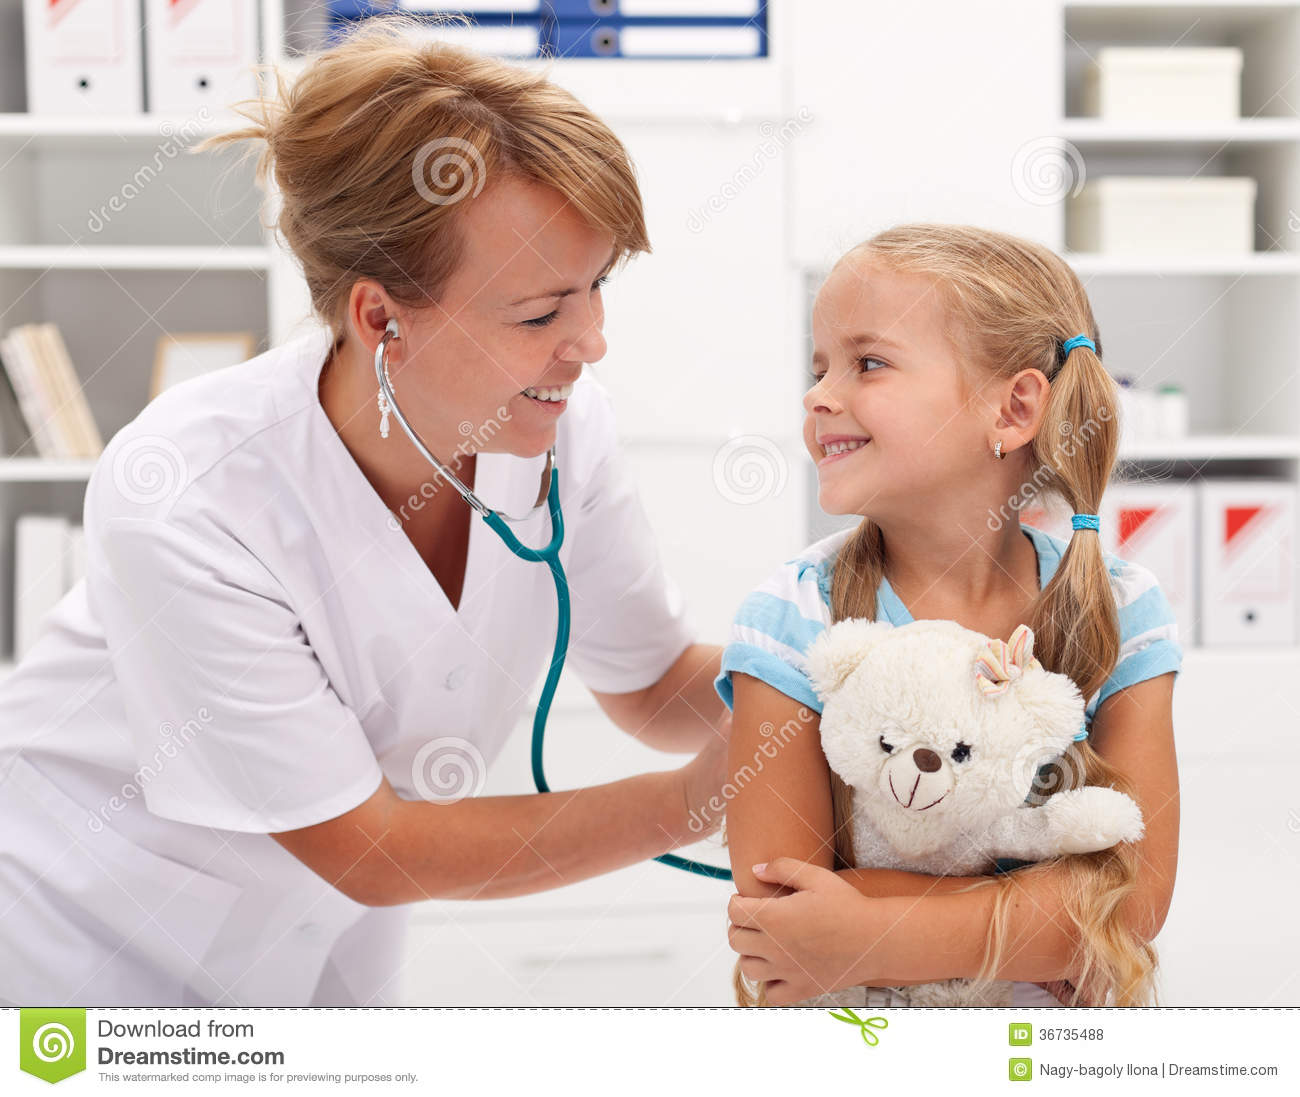 Little Girl At The Doctor For A Checkup Examination Royalty Free Stock ...